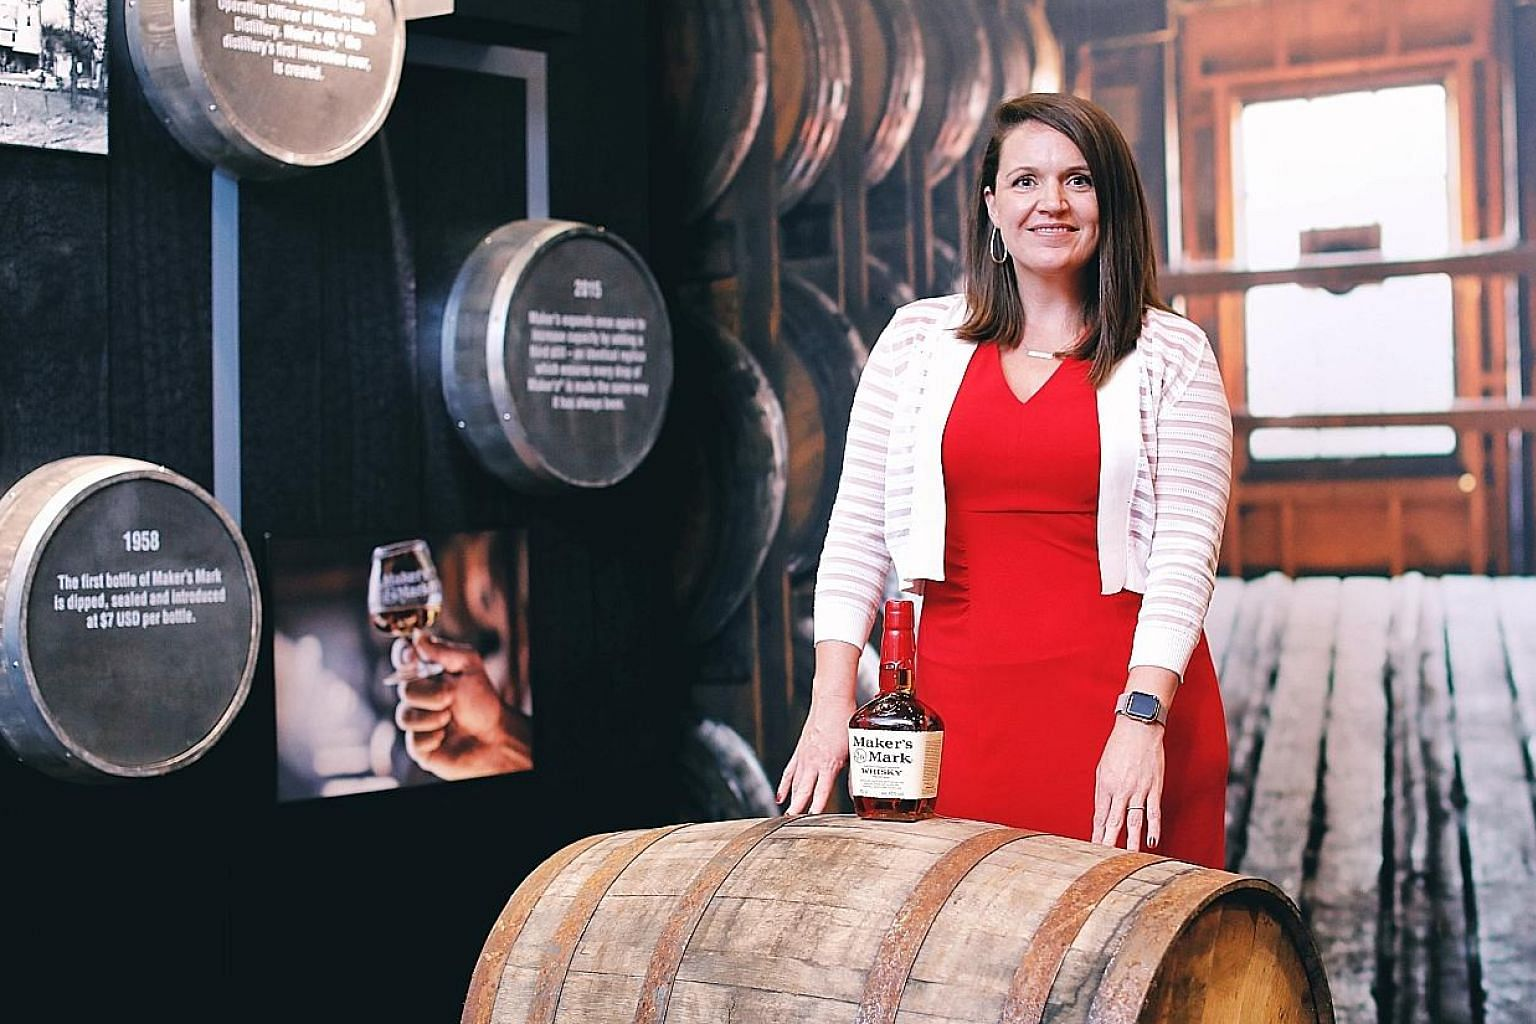 An industry expert will lead each tour and guests may also meet brand ambassadors and master distillers. Westward Whiskey founder Christian Krogstad (above) and Maker's Mark's Jane Bowie (left) are upbeat about the market here.